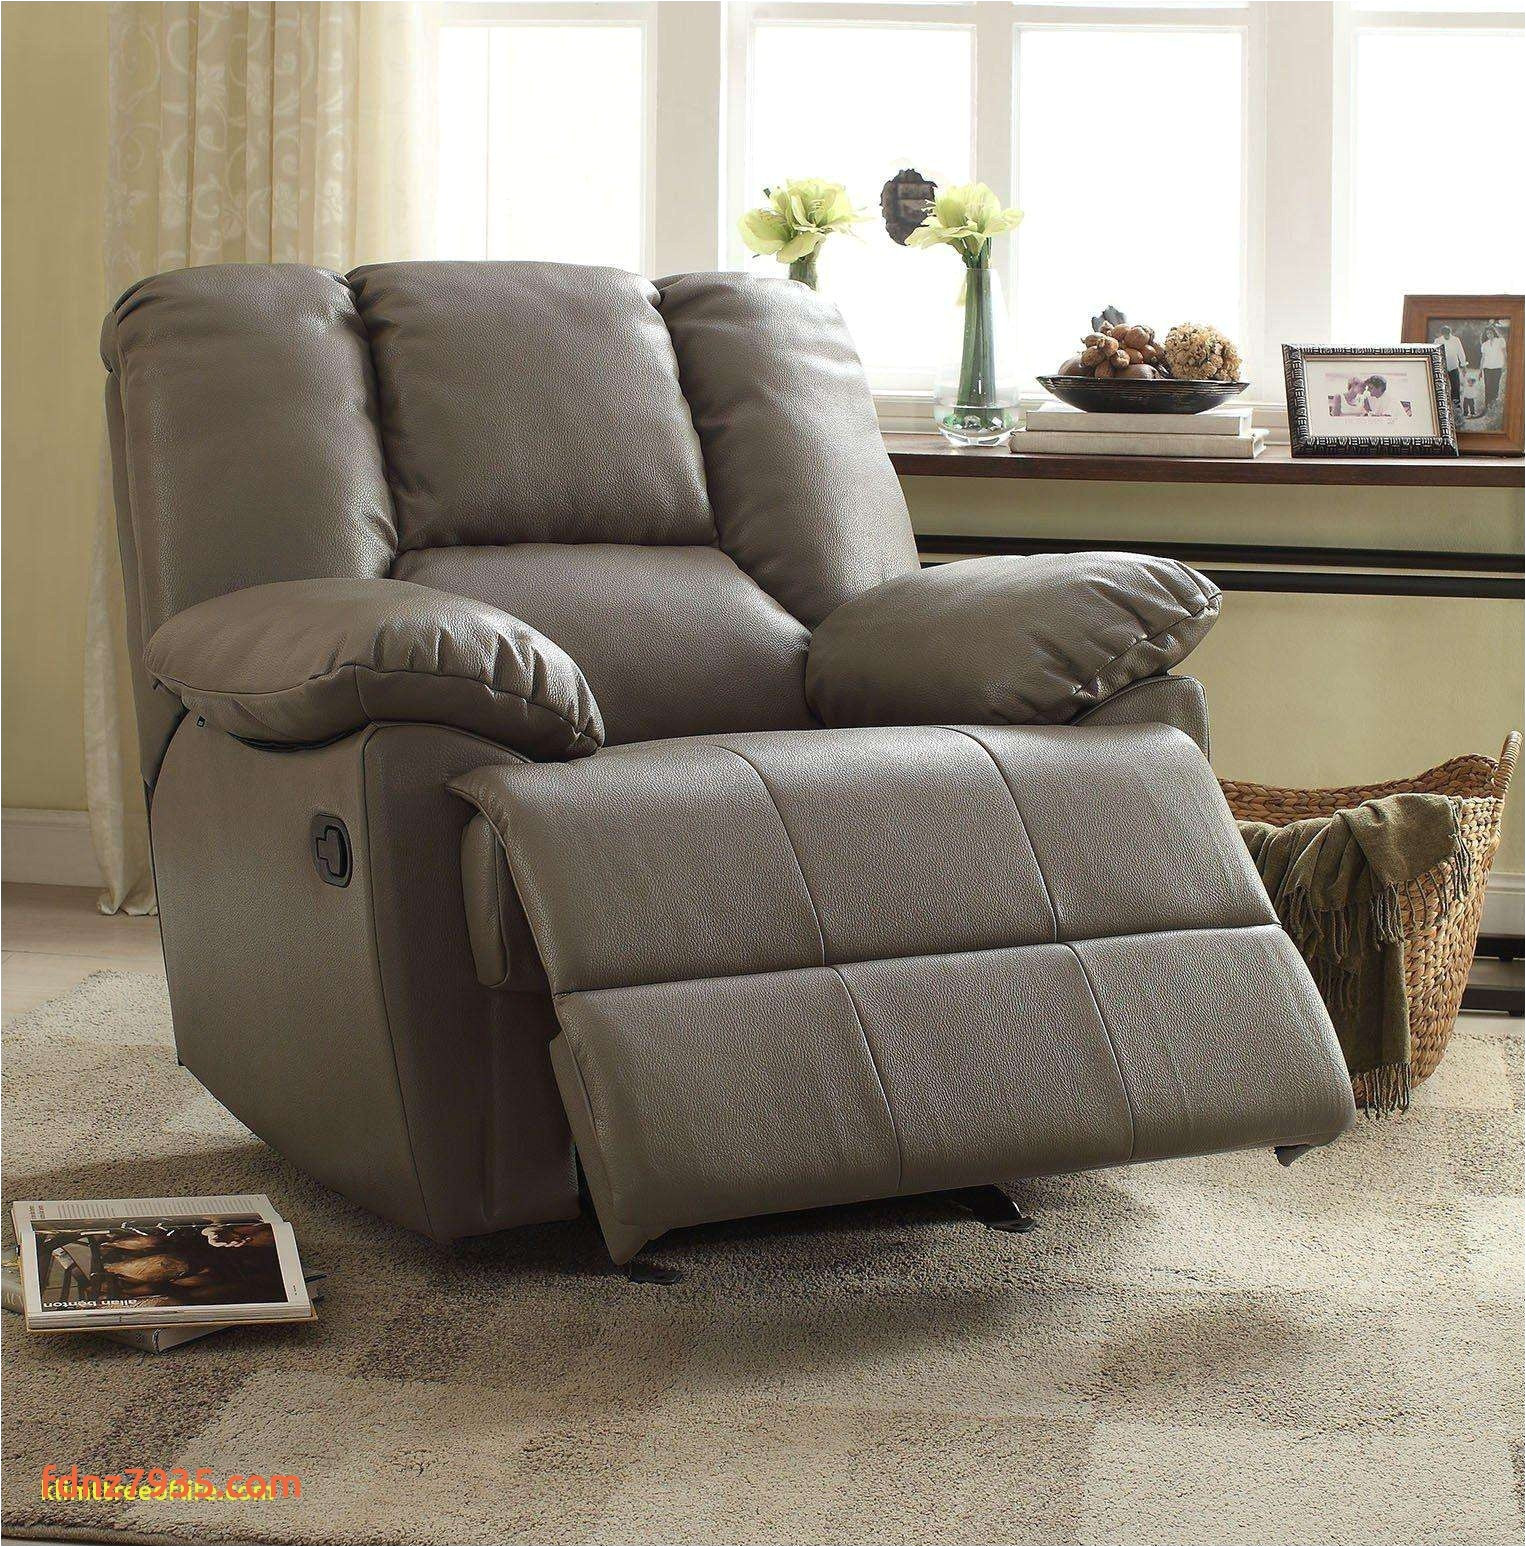 full size of furniture sleeper loveseat inspirational wicker outdoor sofa 0d patio chairs sale replacement